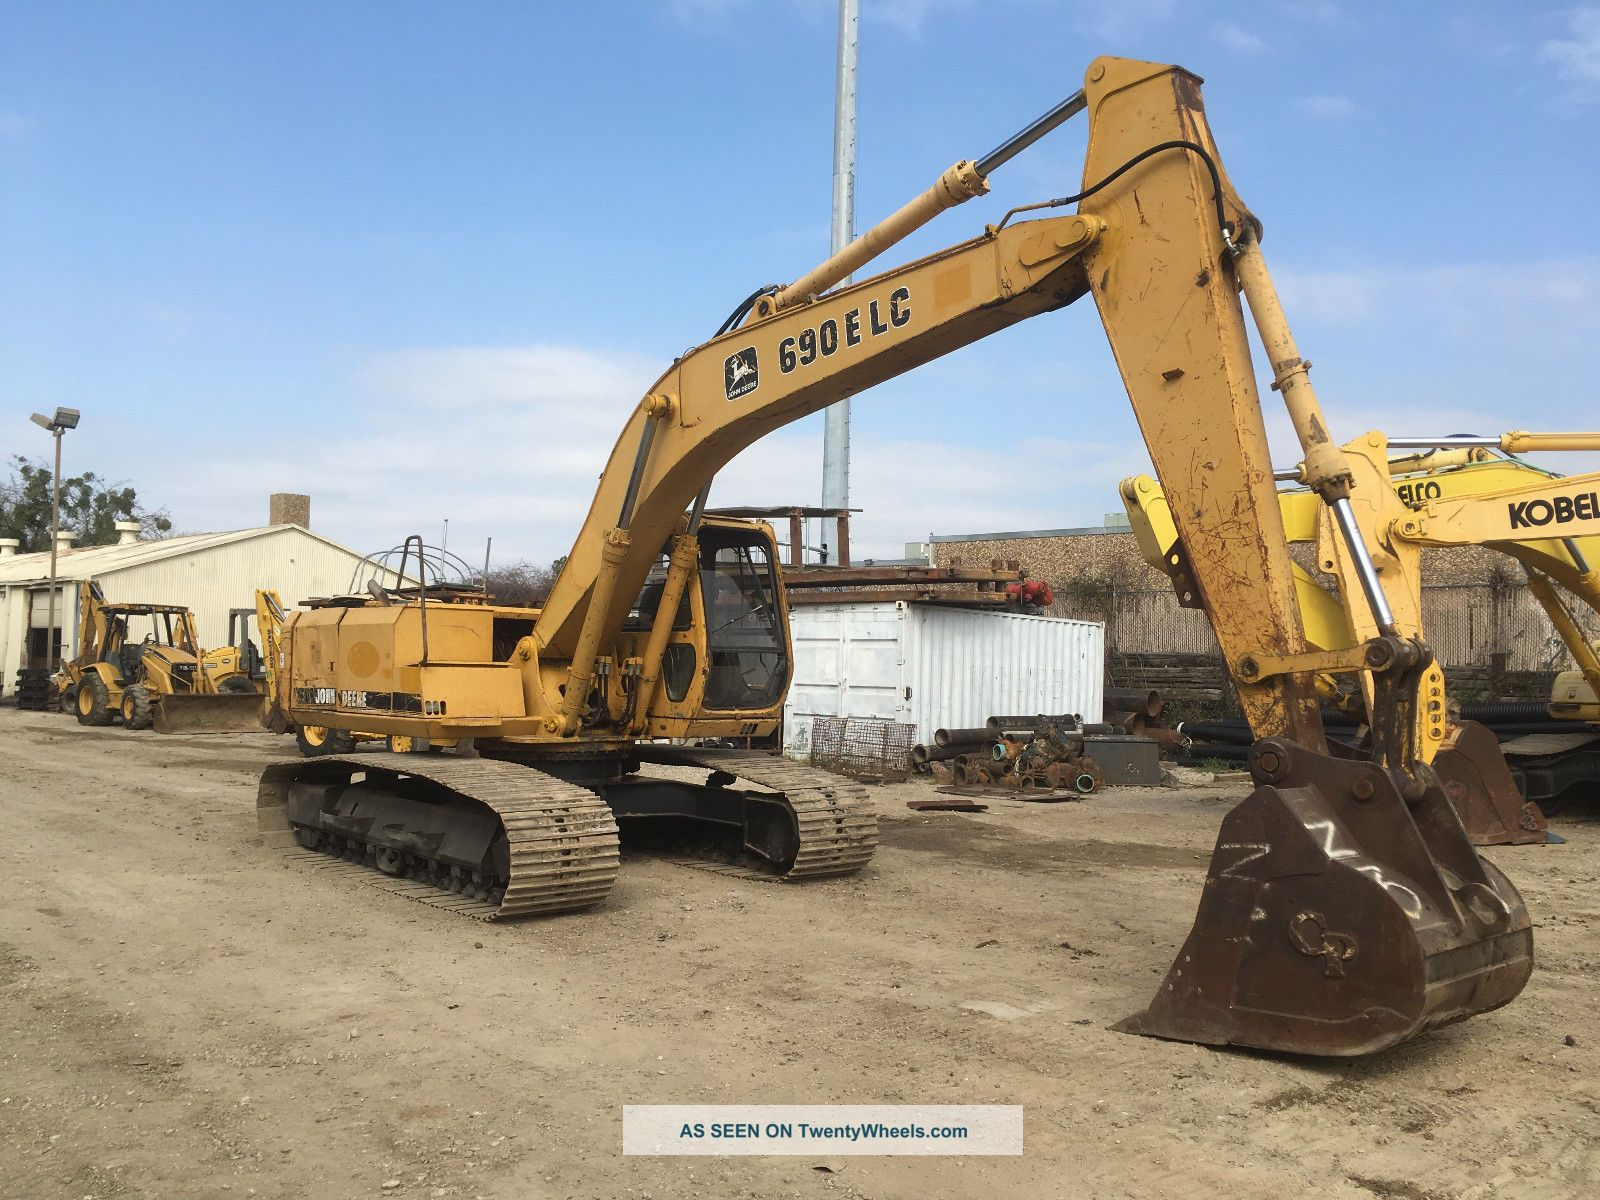 John Deere 690e Lc Excavator; Tx Machine Excavators photo